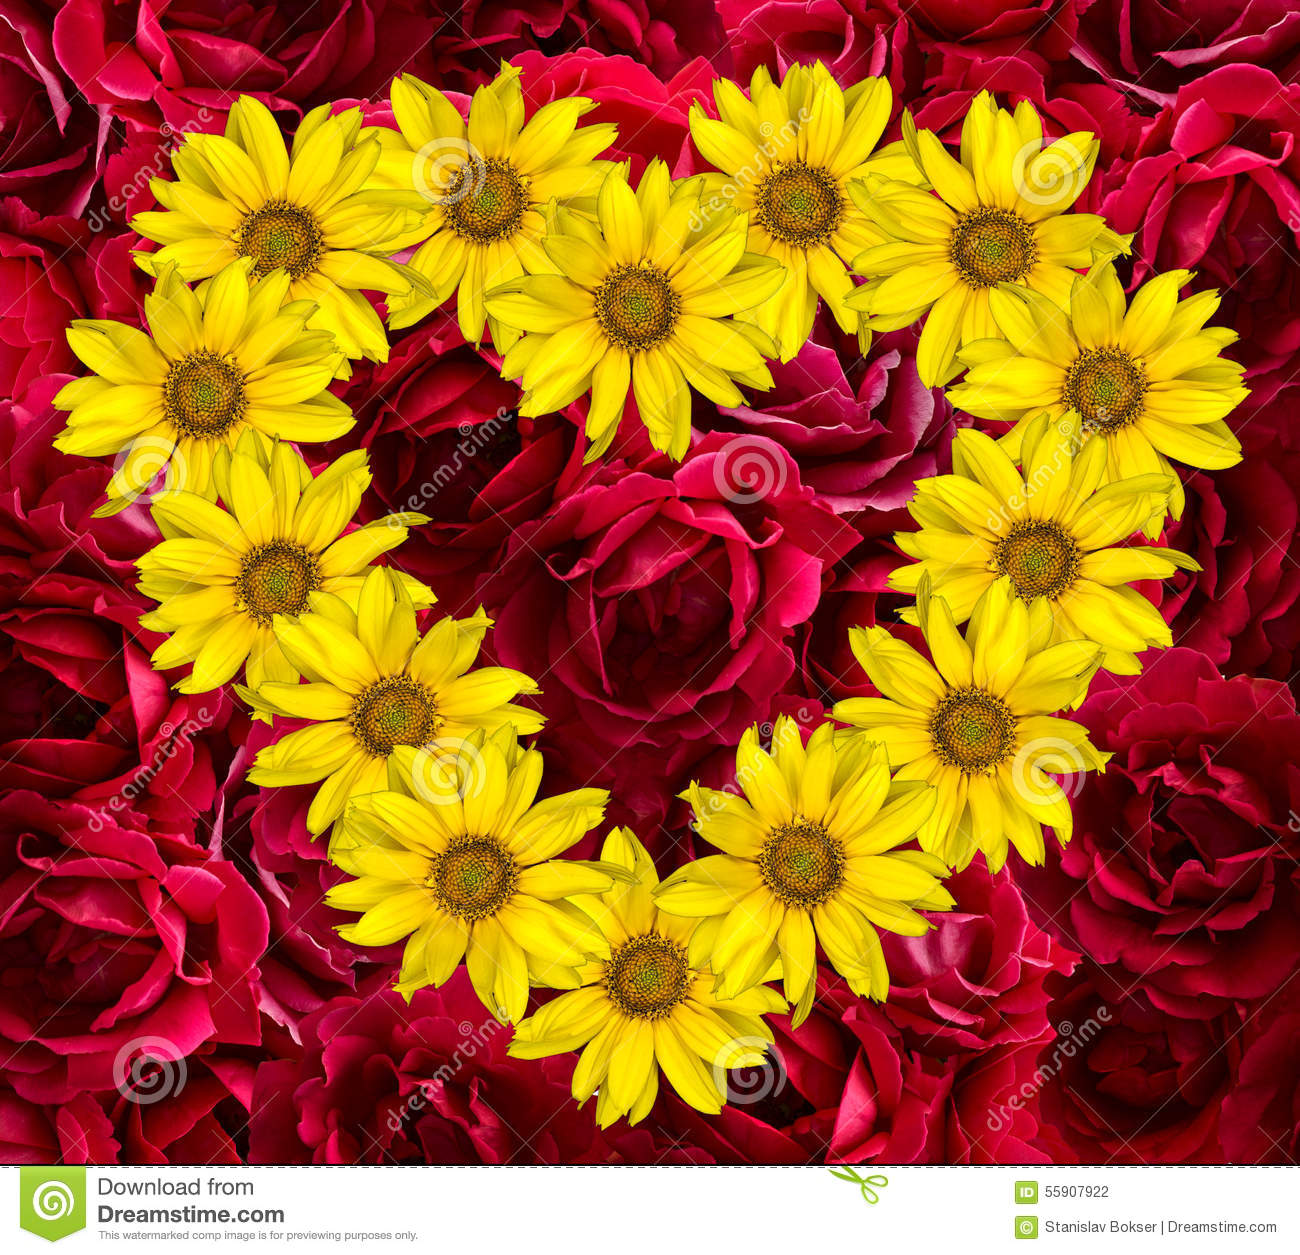 Heart of yellow flowers of decorative sunflowers Helinthus and red rose